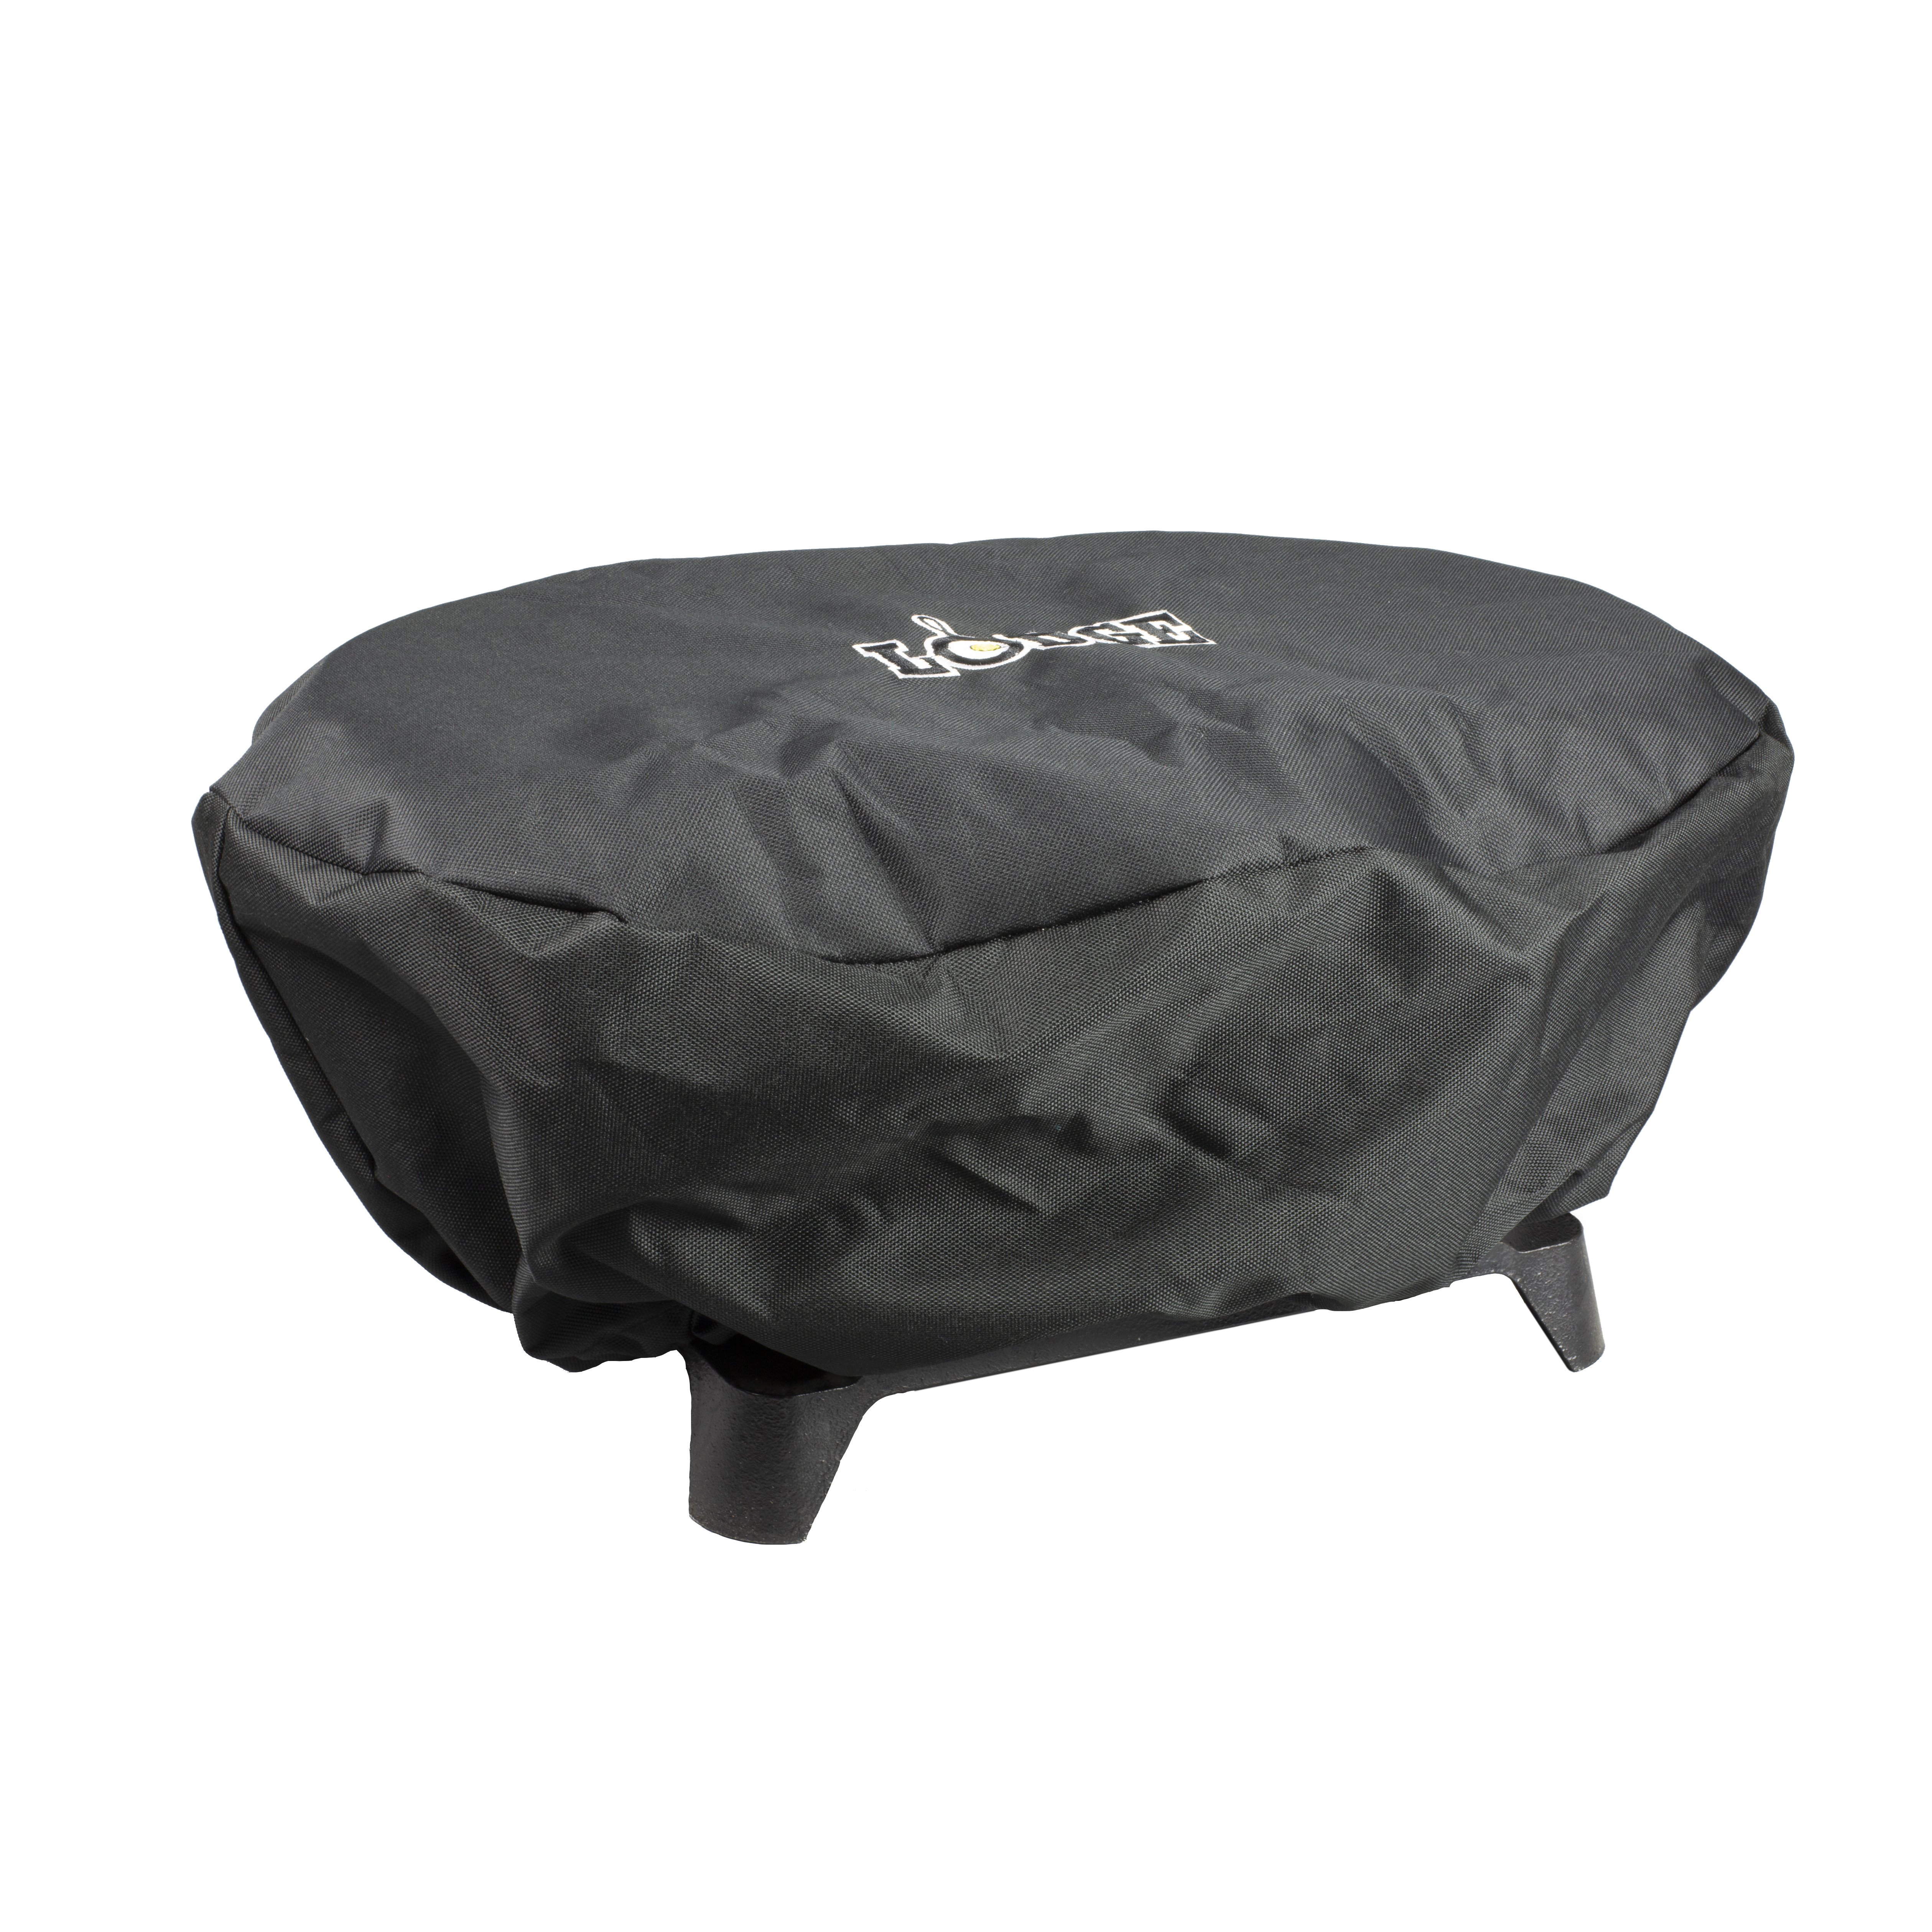 Lodge Manufacturing AT-410 outdoor grill/fire pit cover